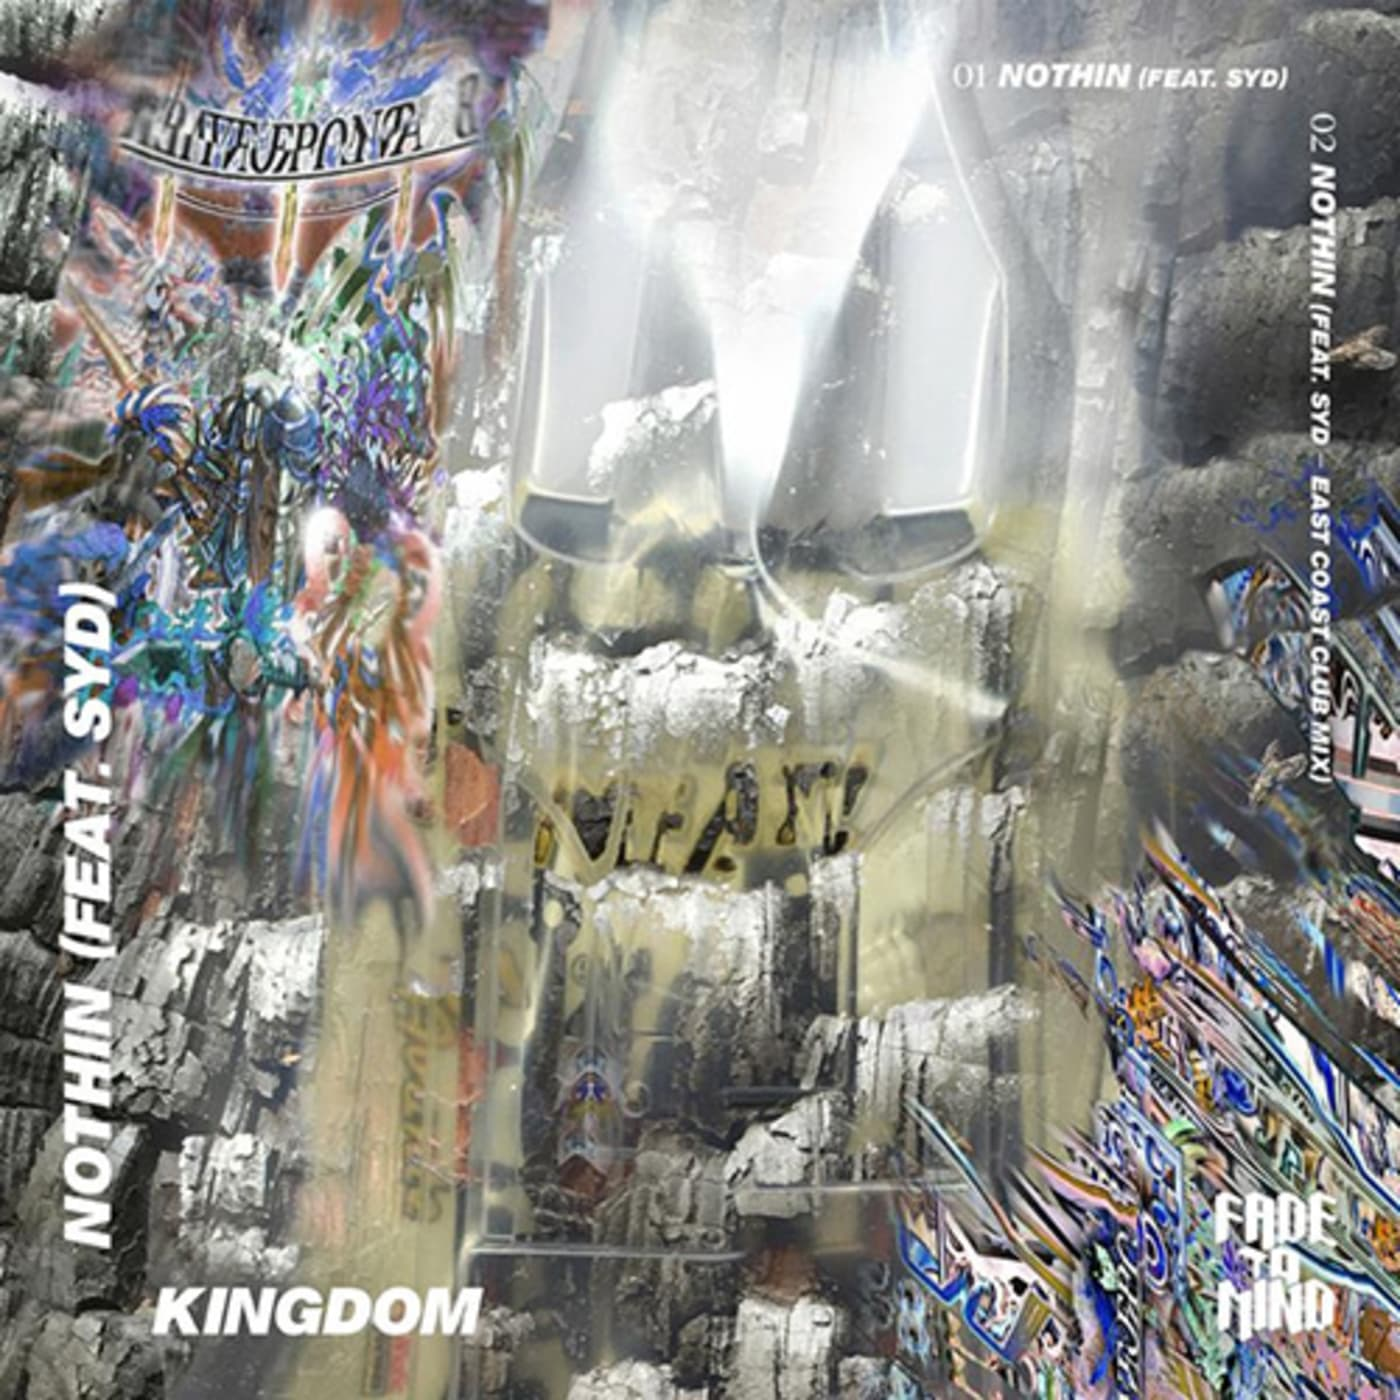 This is a photo of Kingdom.